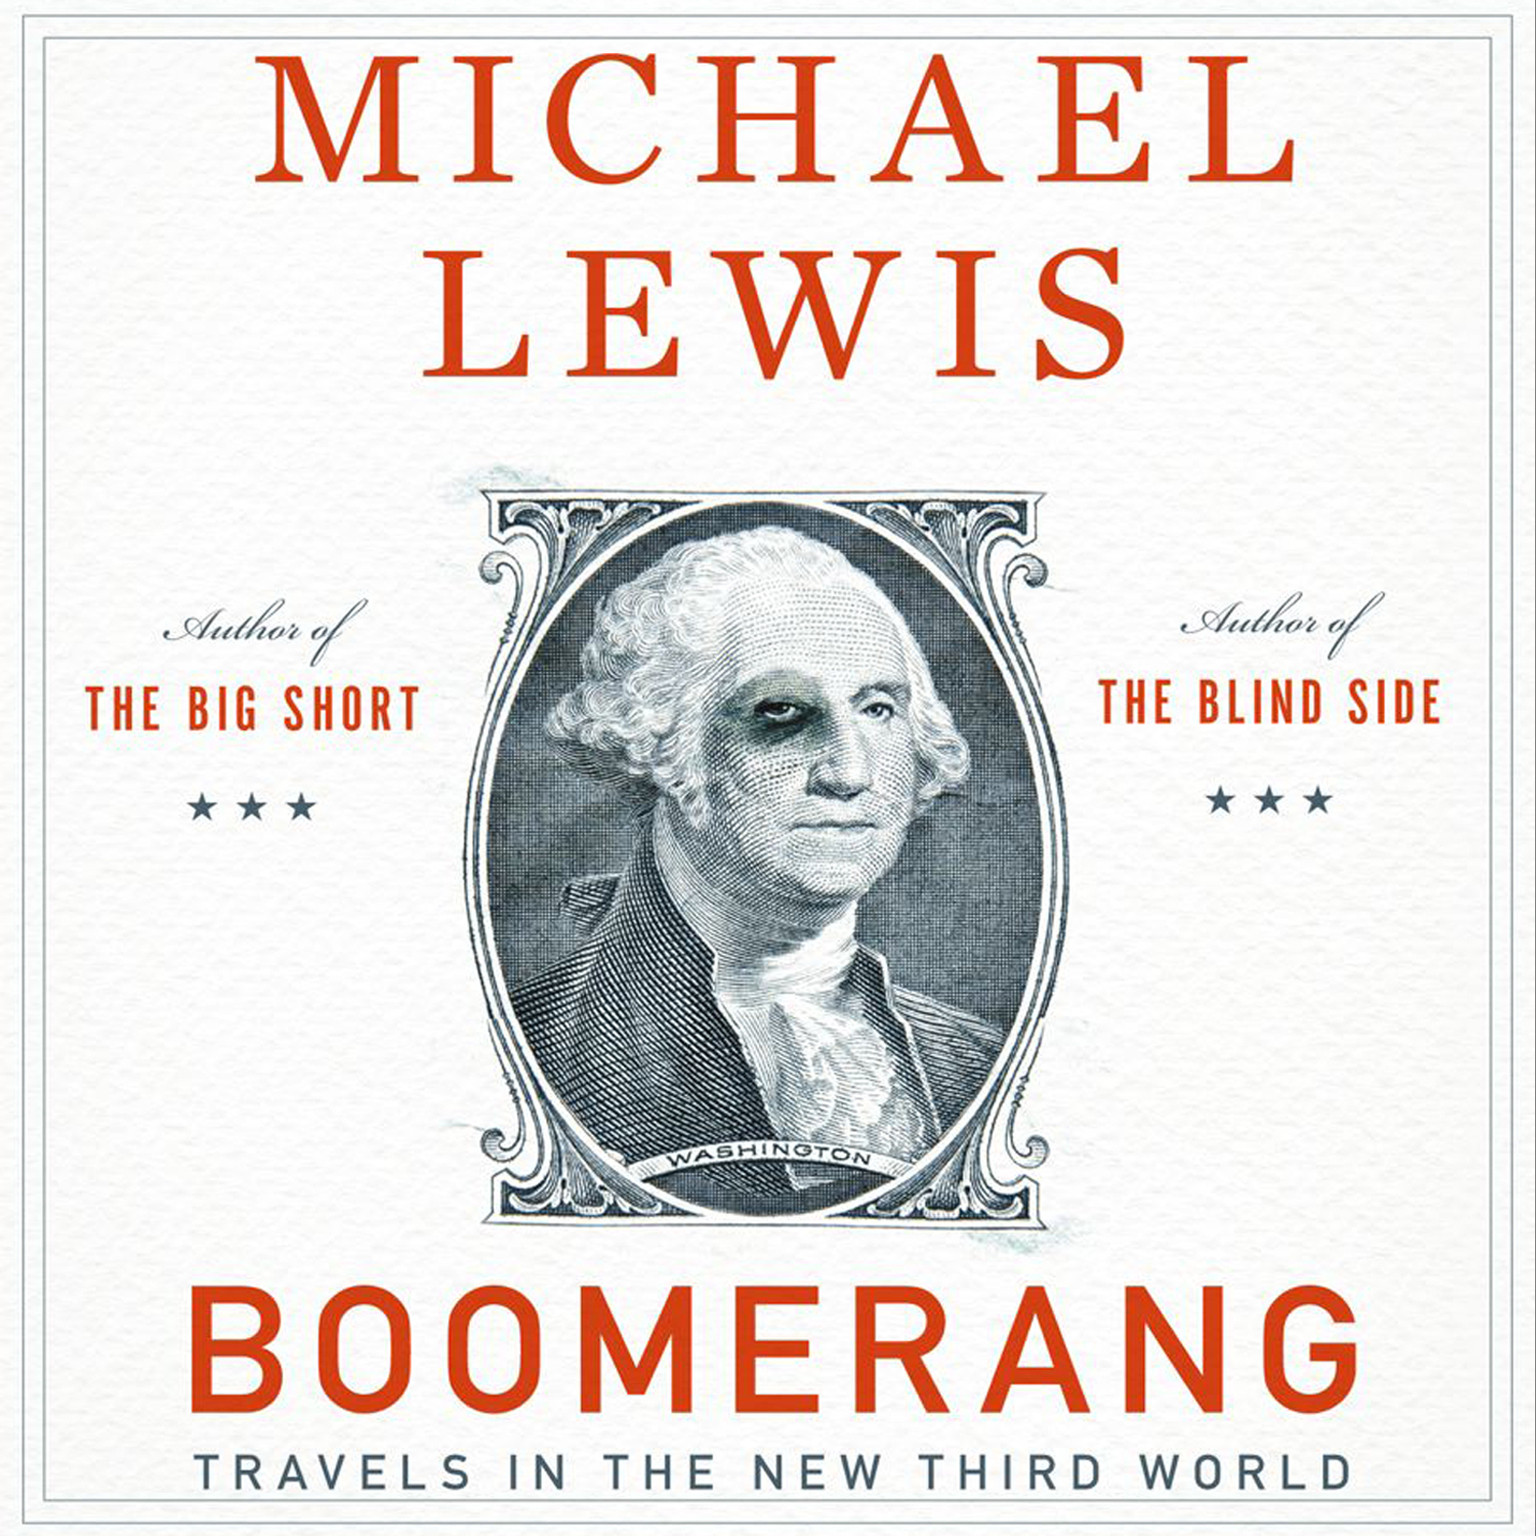 Boomerang: Travels in the New Third World - Michael Lewis - quotes, rating, reviews, where to buy